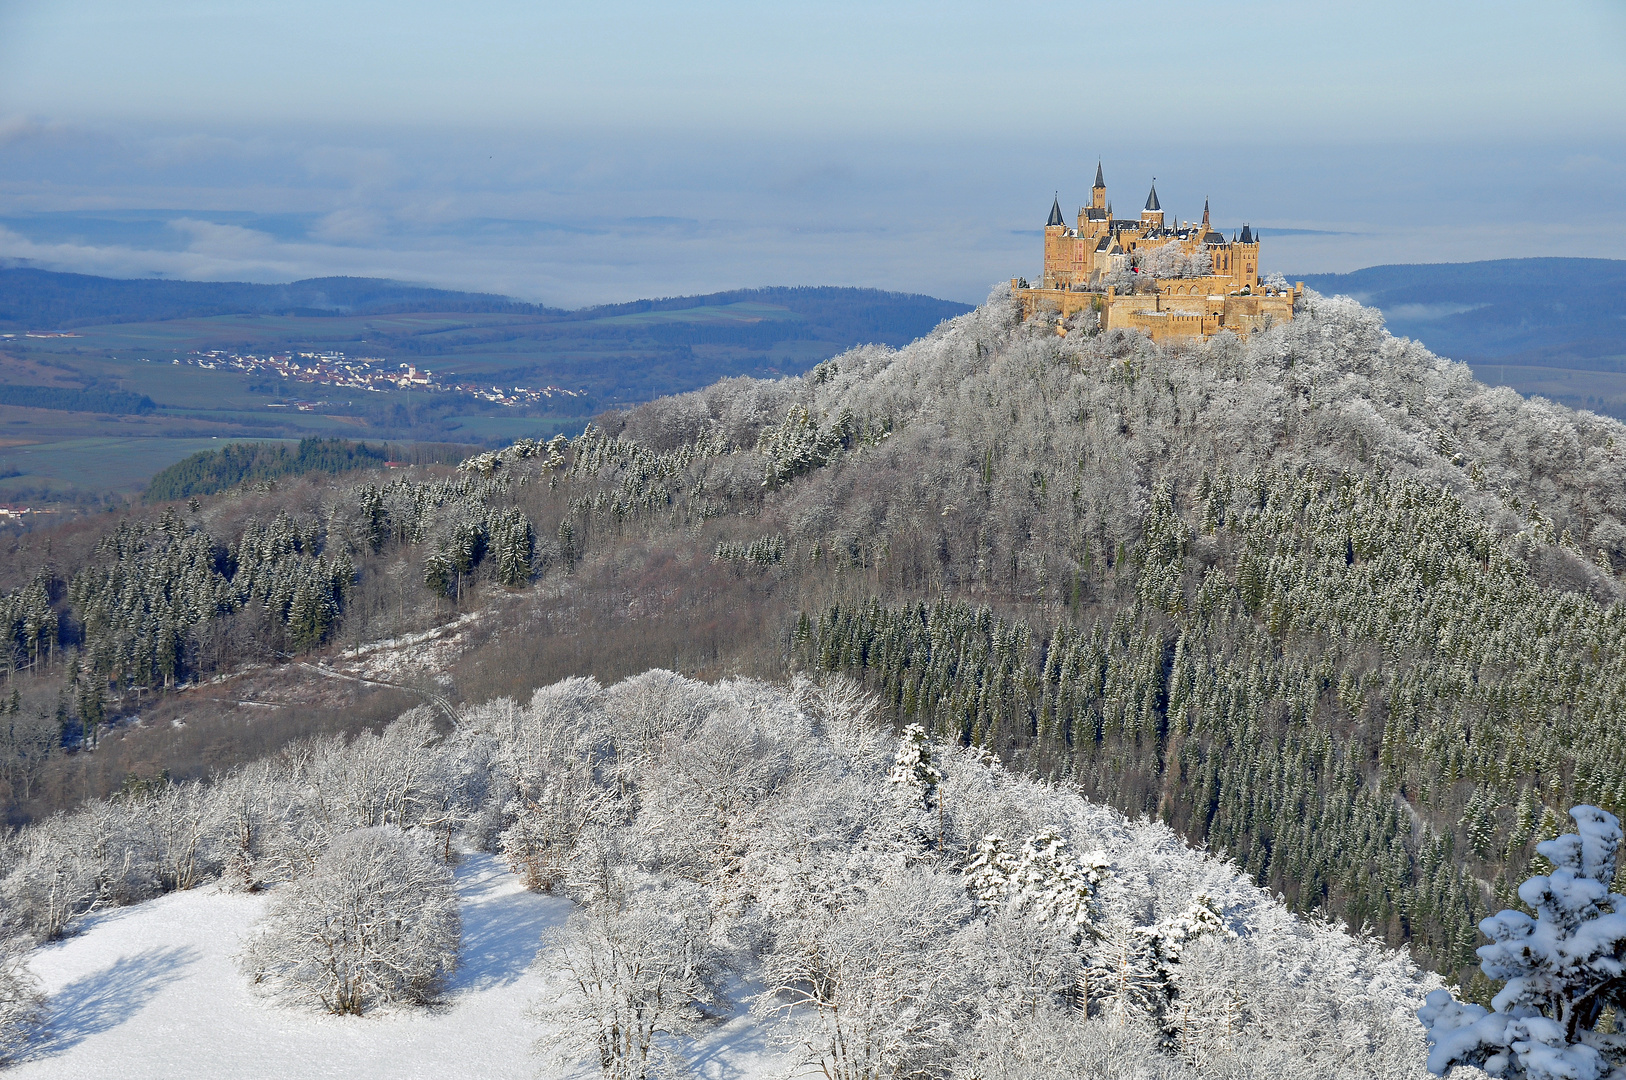 burg hohenzollern im winter foto bild jahreszeiten winter natur bilder auf fotocommunity. Black Bedroom Furniture Sets. Home Design Ideas